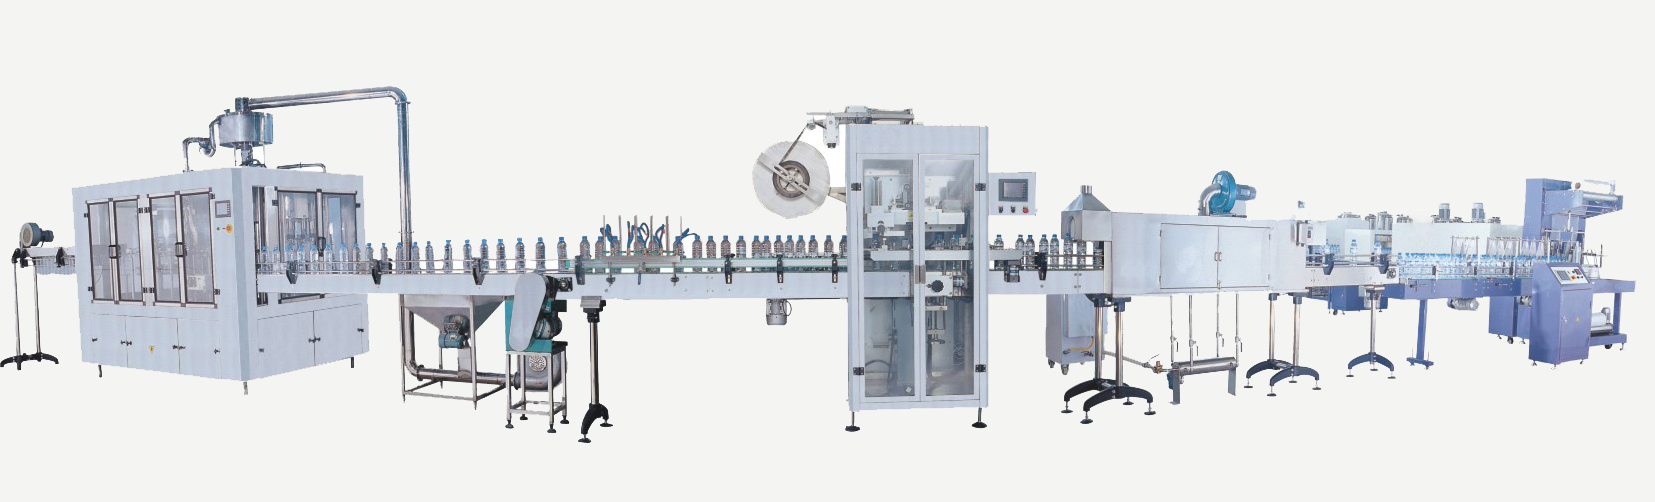 3000-5000BPH_Automatic_Water_Bottling_Line